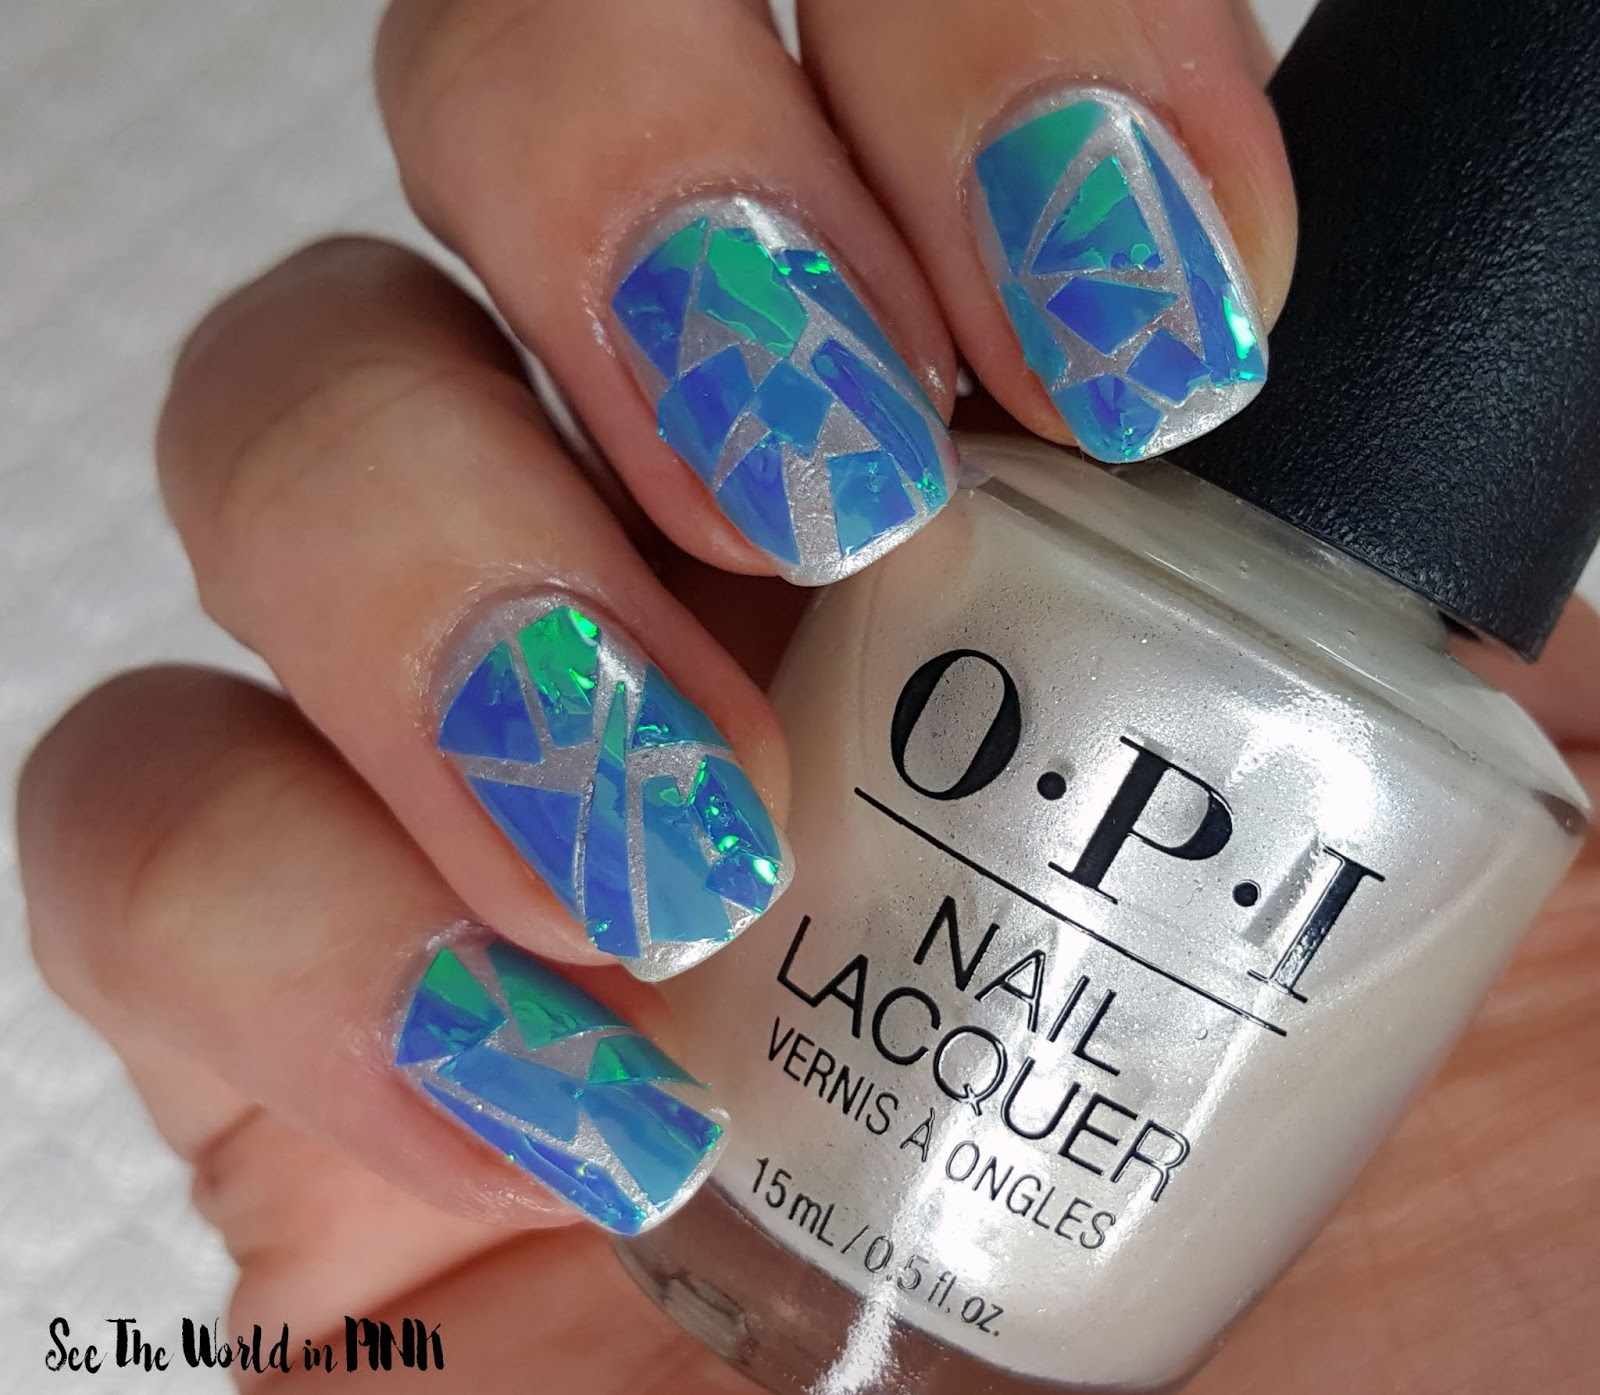 Manicure Monday - Broken Glass Nails